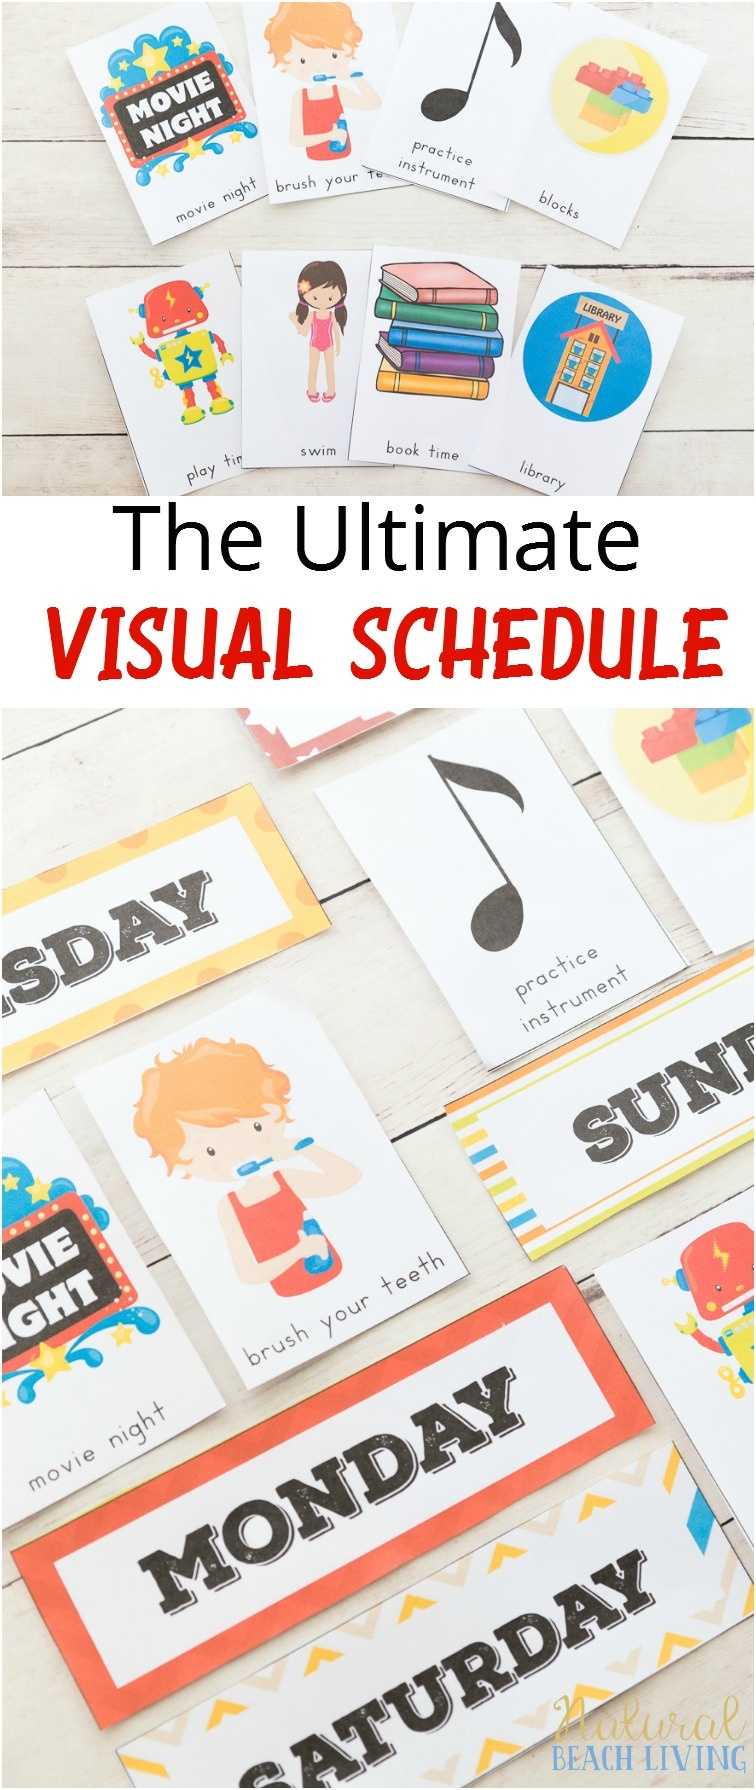 Extra Daily Visual Schedule Cards Free Printables - Natural Beach Living - Free Printable Picture Schedule Cards